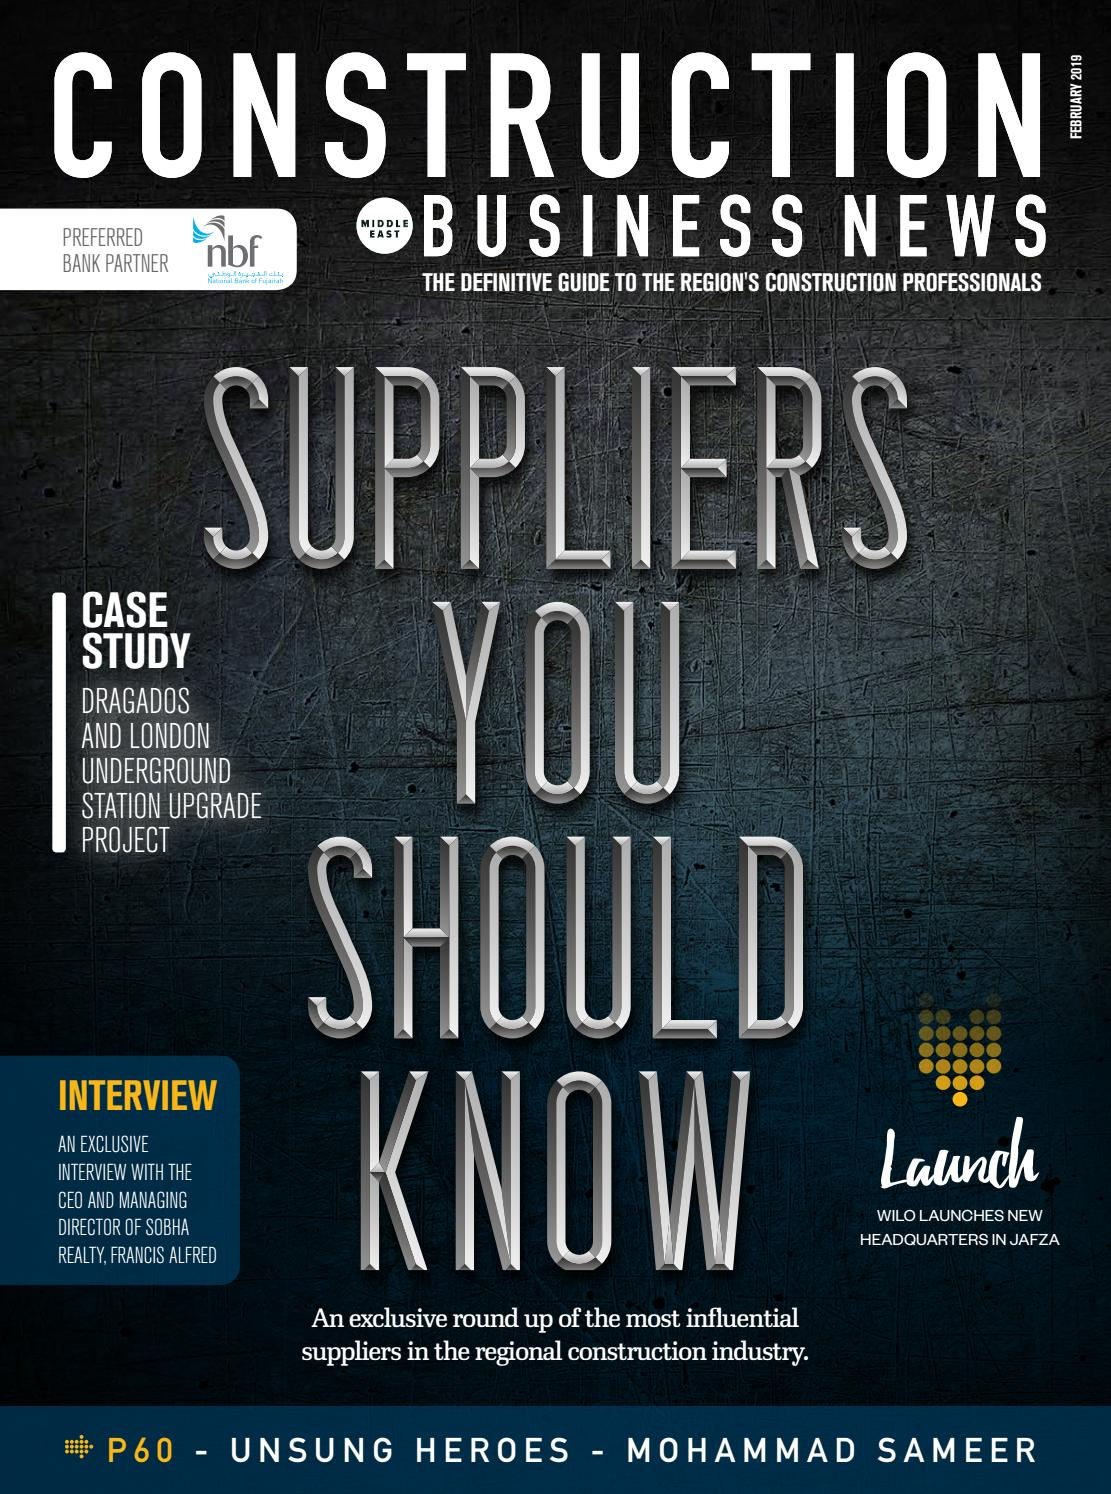 Construction Business News ME February 2019 by BNC Publishing - issuu